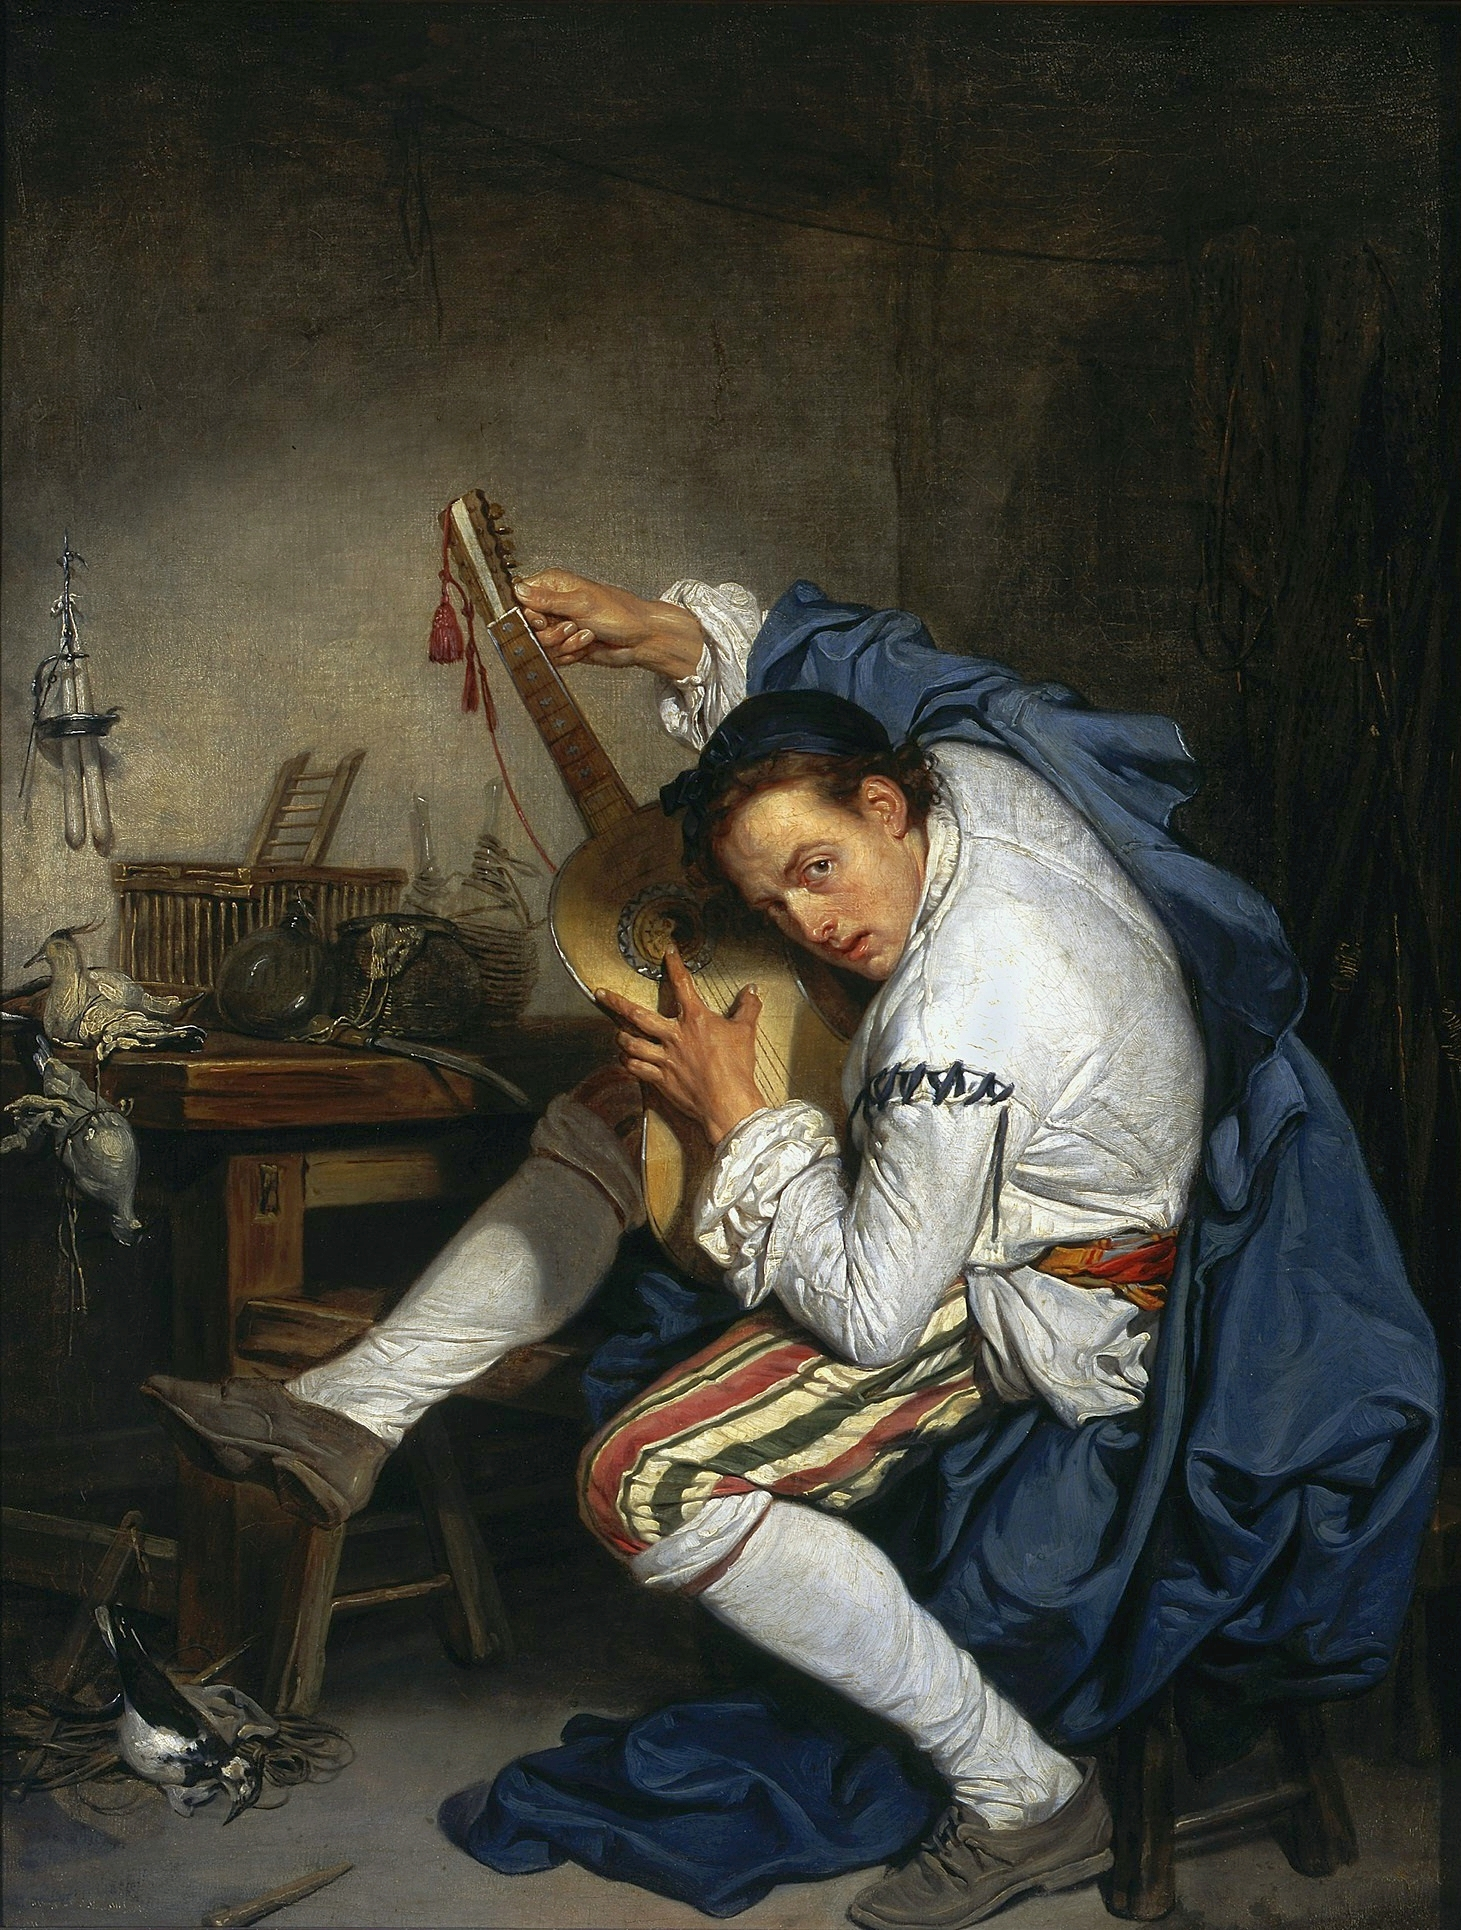 Guitarist Painting File:Greuze Guitarist....